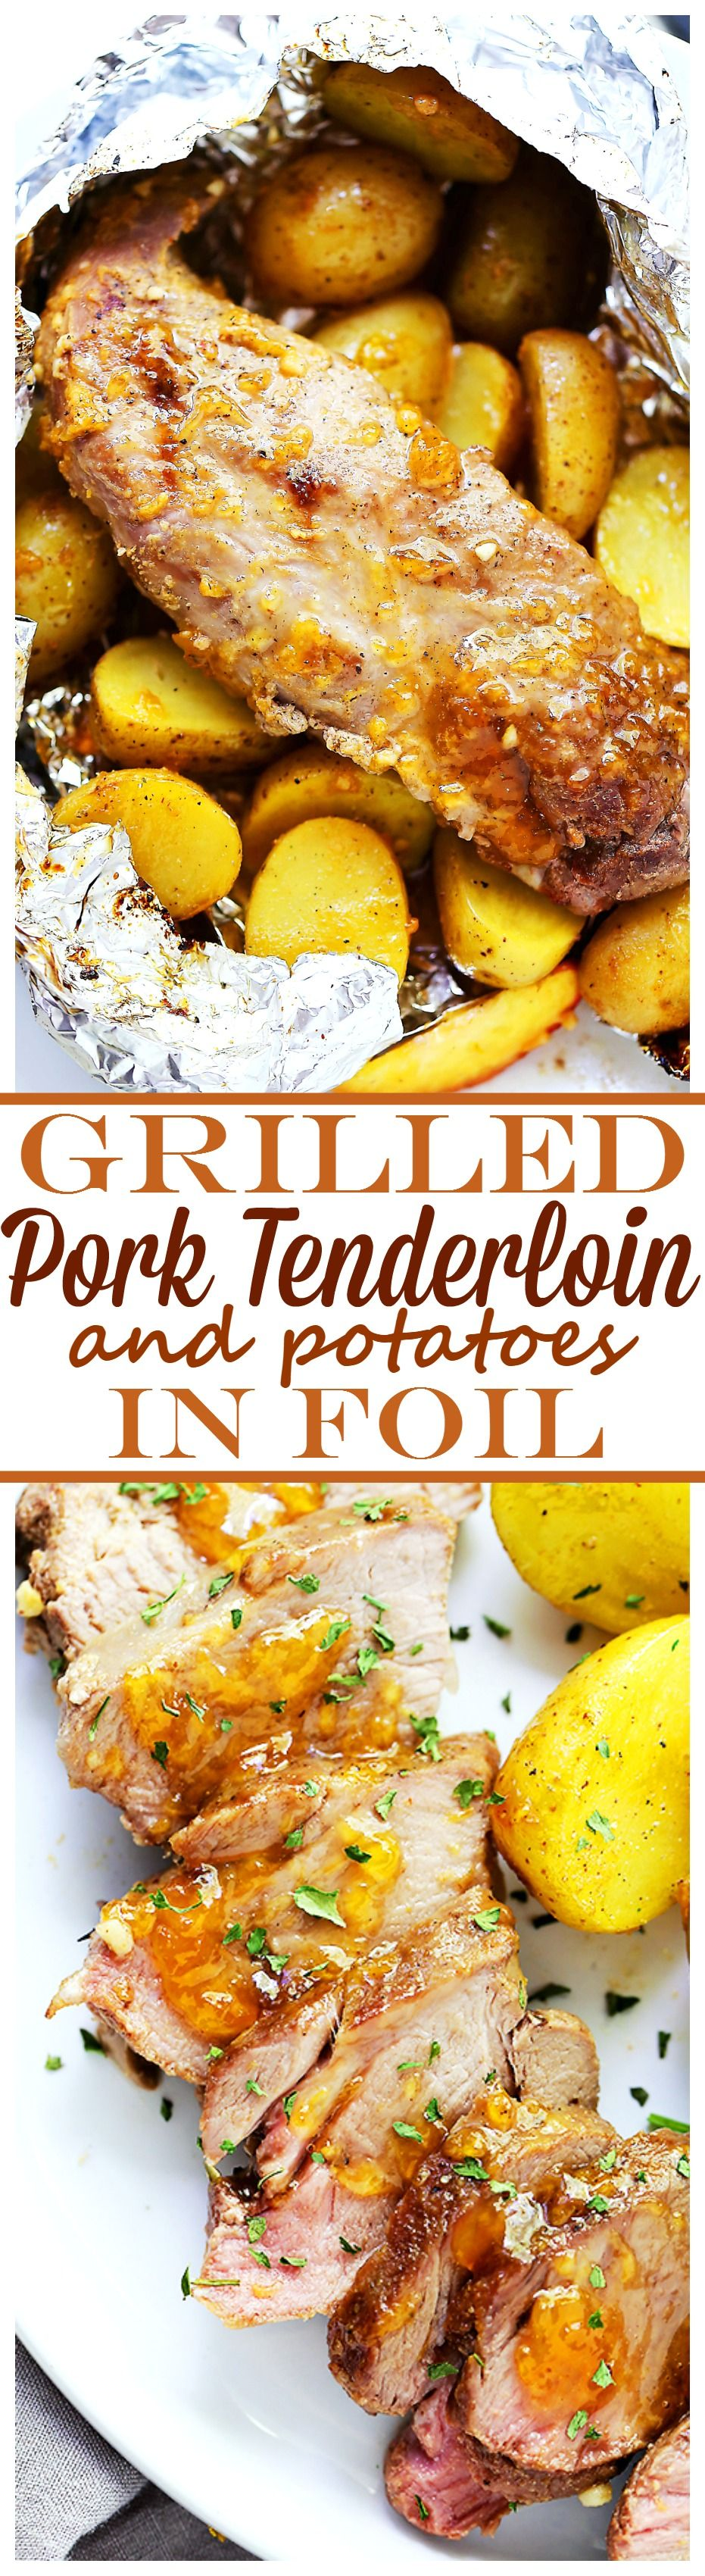 Grilled Peach-Glazed Pork Tenderloin Foil Packet with Potatoes - Glazed with peach preserves and flavored with a hint of garlic, this easy to make meat and potatoes dinner is impressive, incredibly delicious, and since it's grilled in foil packs, cleanup is a snap!